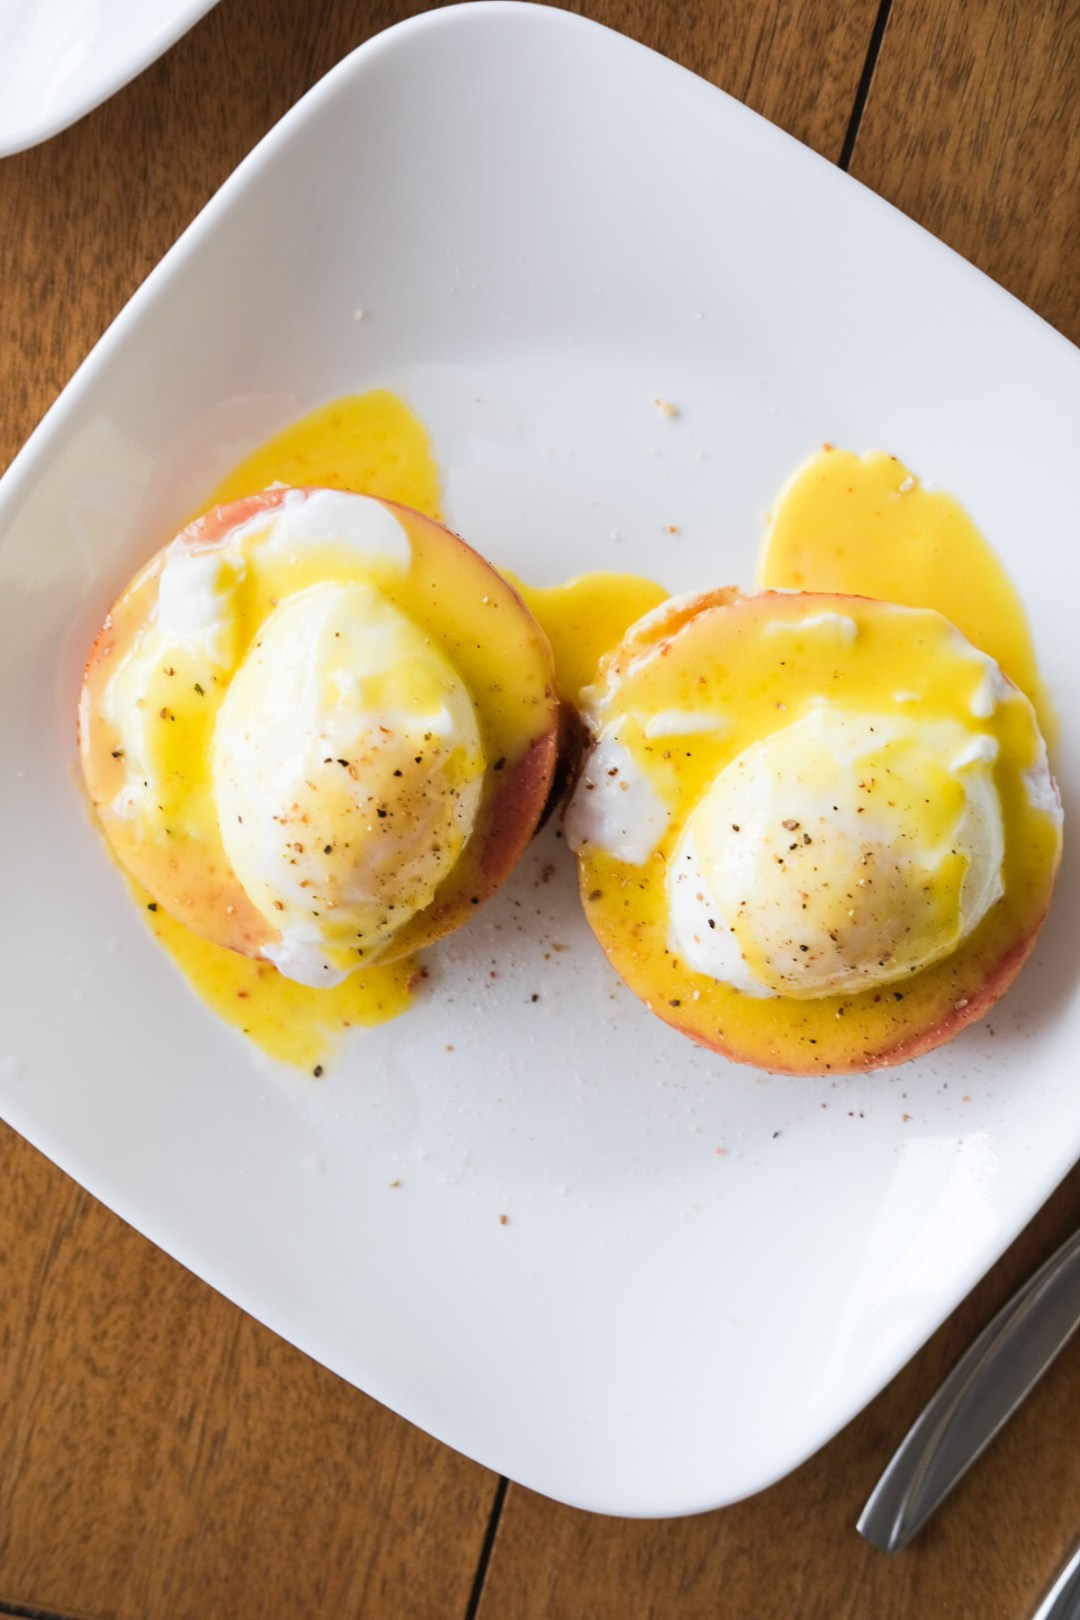 plate of eggs benedict with hollandaise